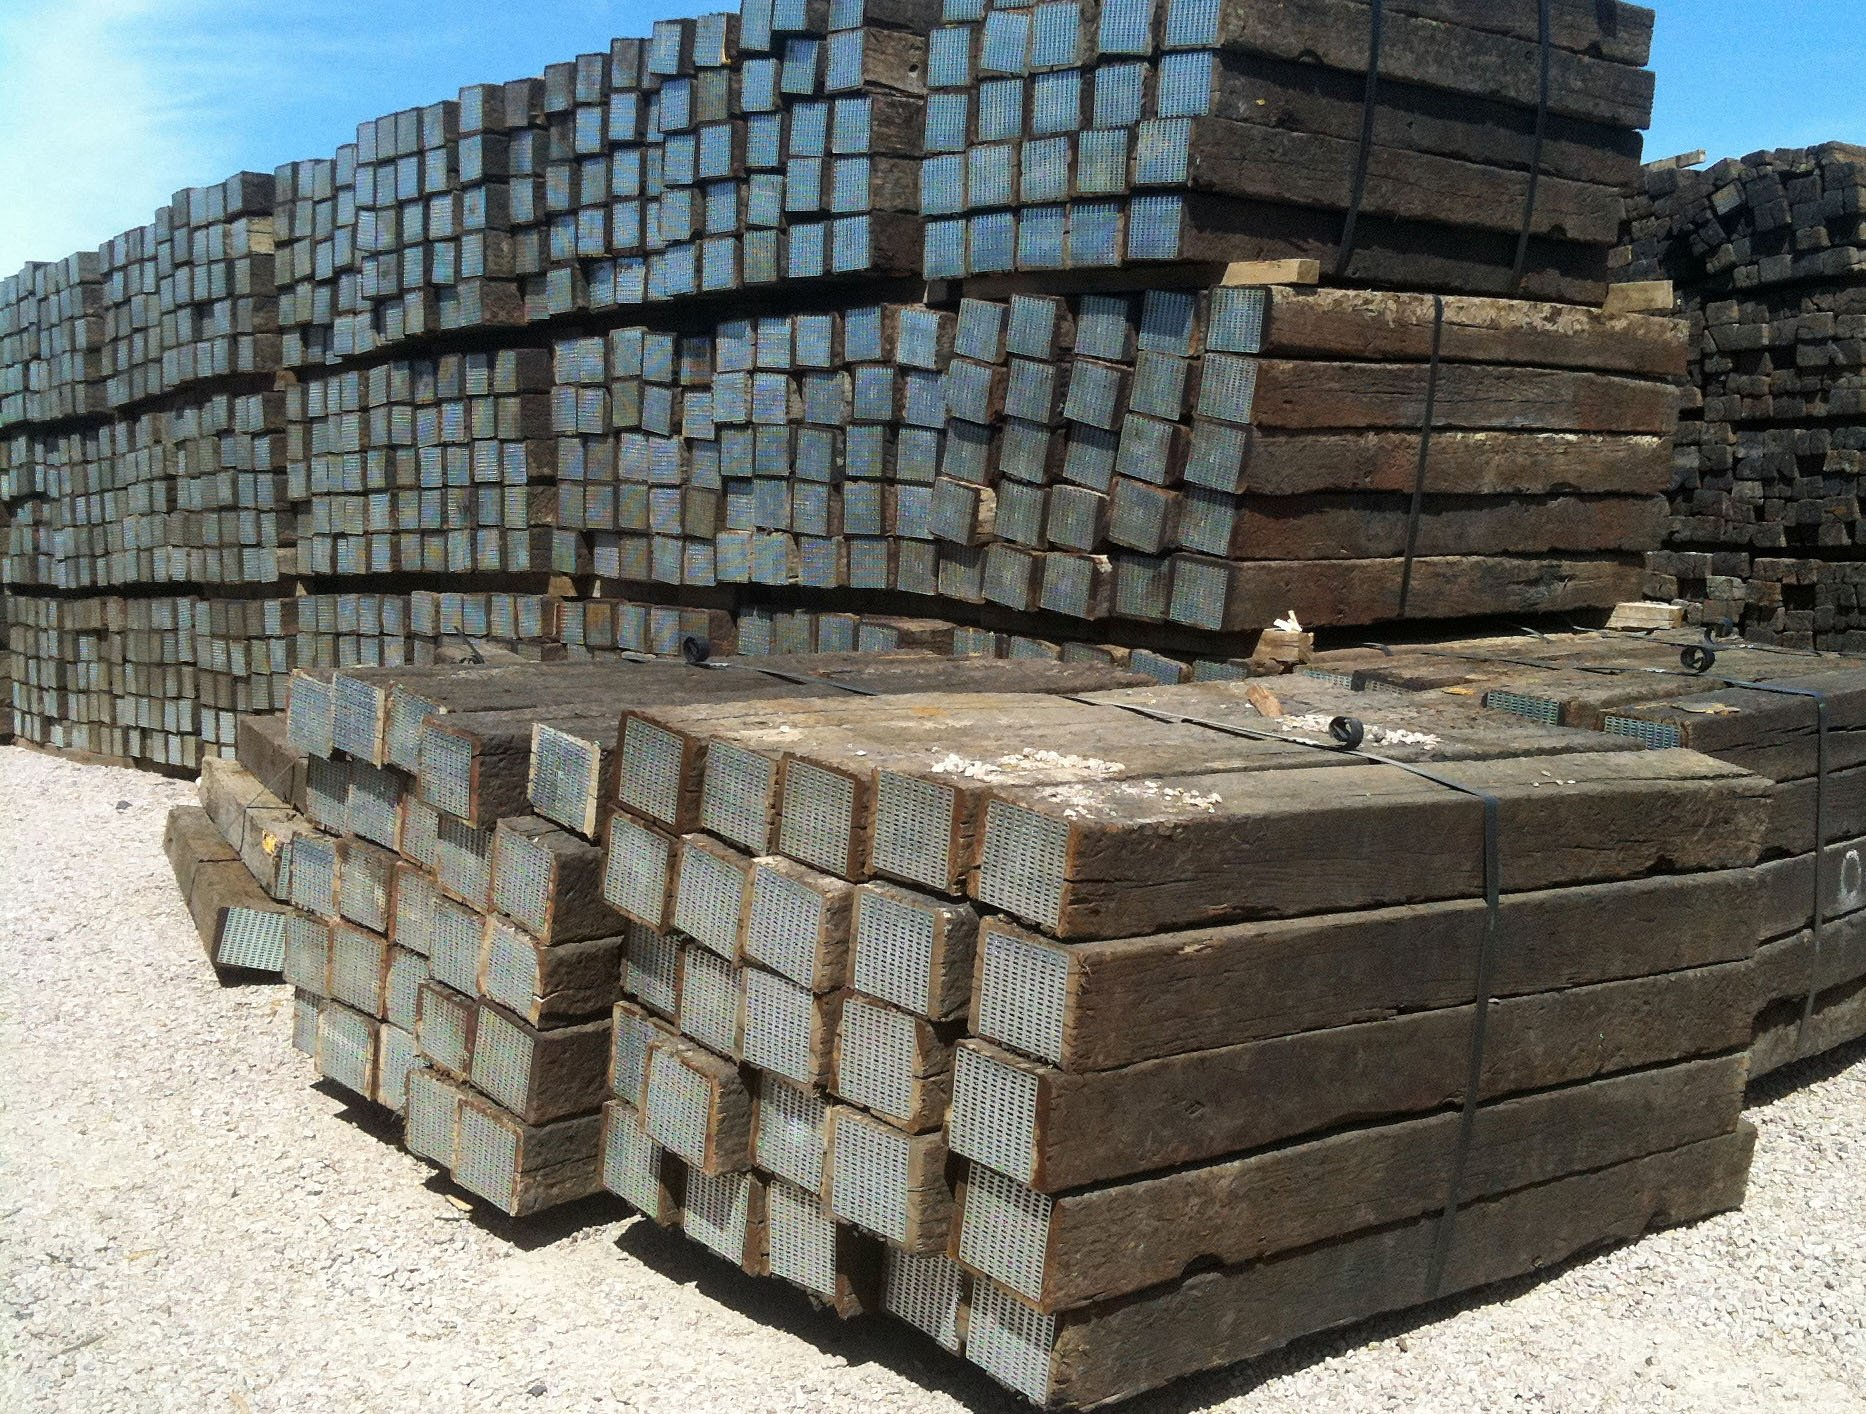 10 Best Railroad Ties Retaining Wall Ideas pick up 2 hobos contrast railroad ties with cadillac crew unusual 2020